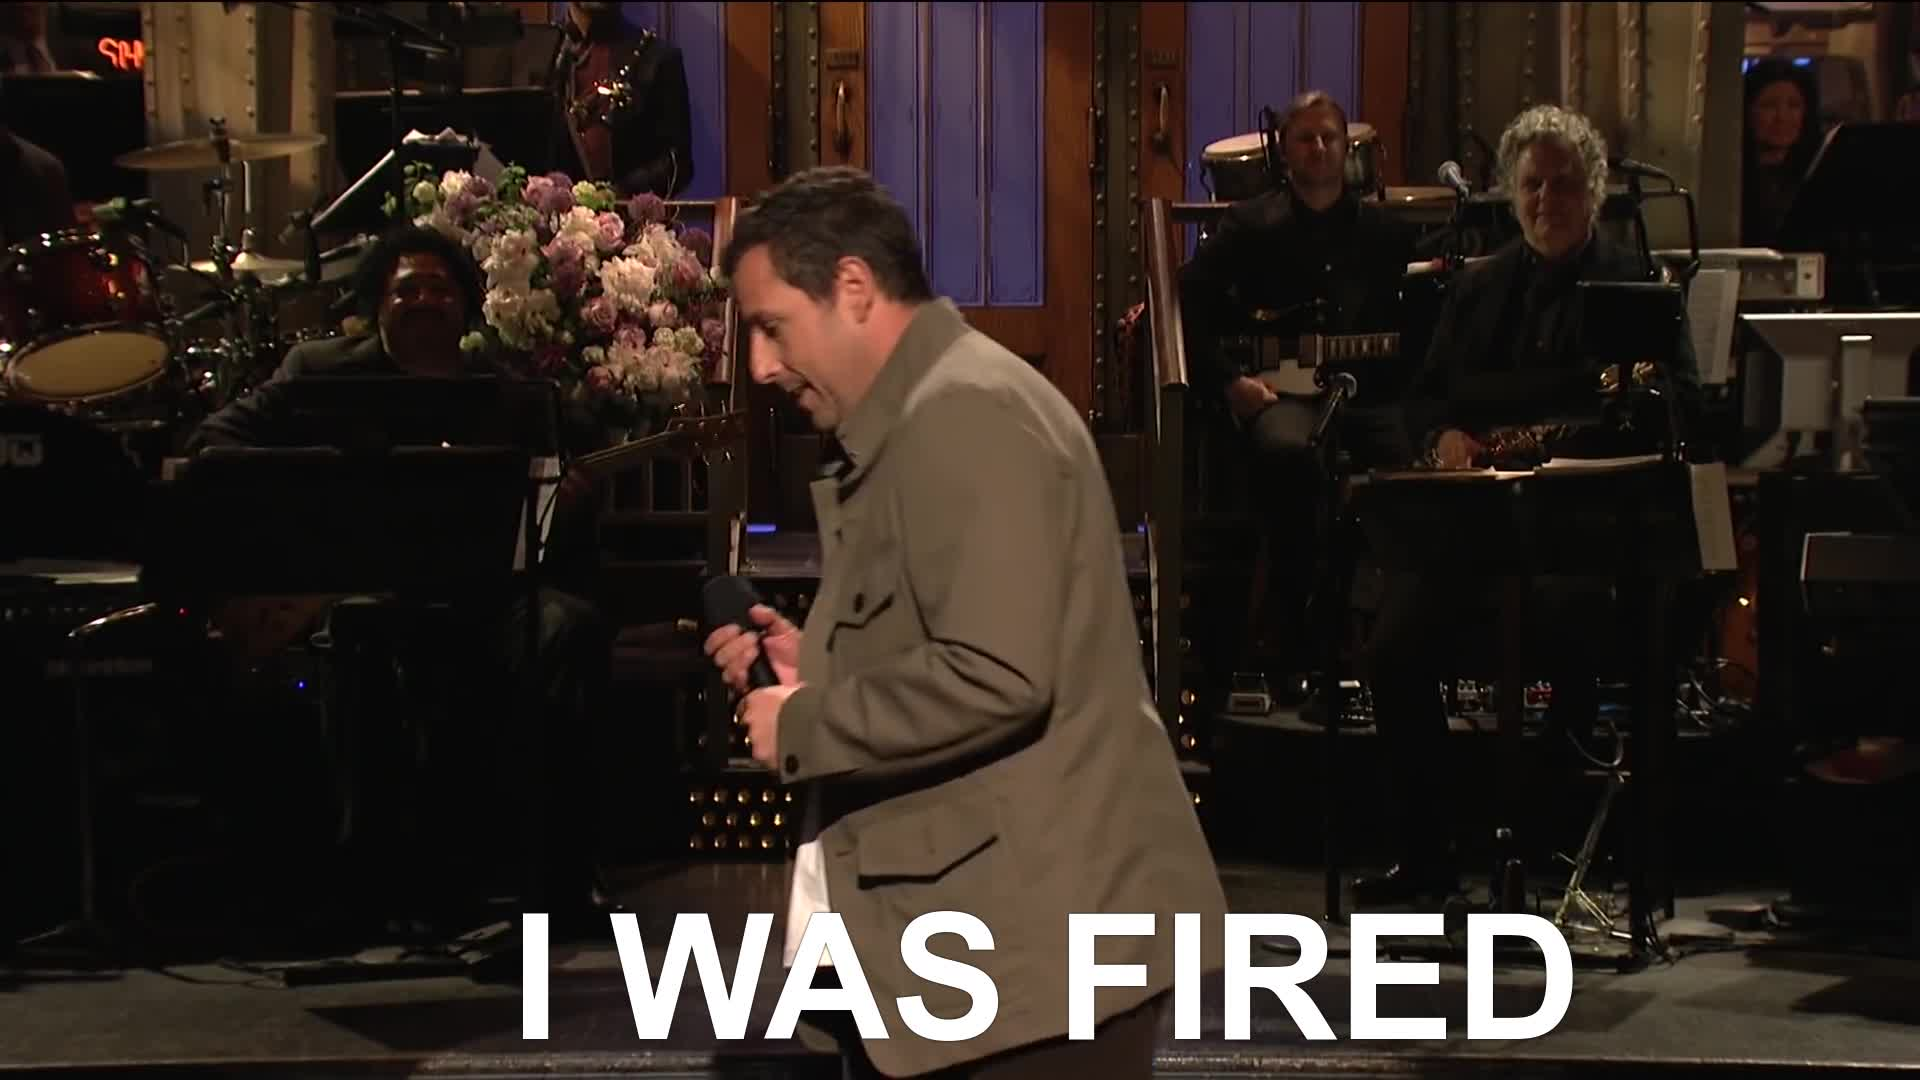 adam sandler, comedy, fired, saturday night live, snl, Adam Sandler I Was Fired SNL Monologue GIFs